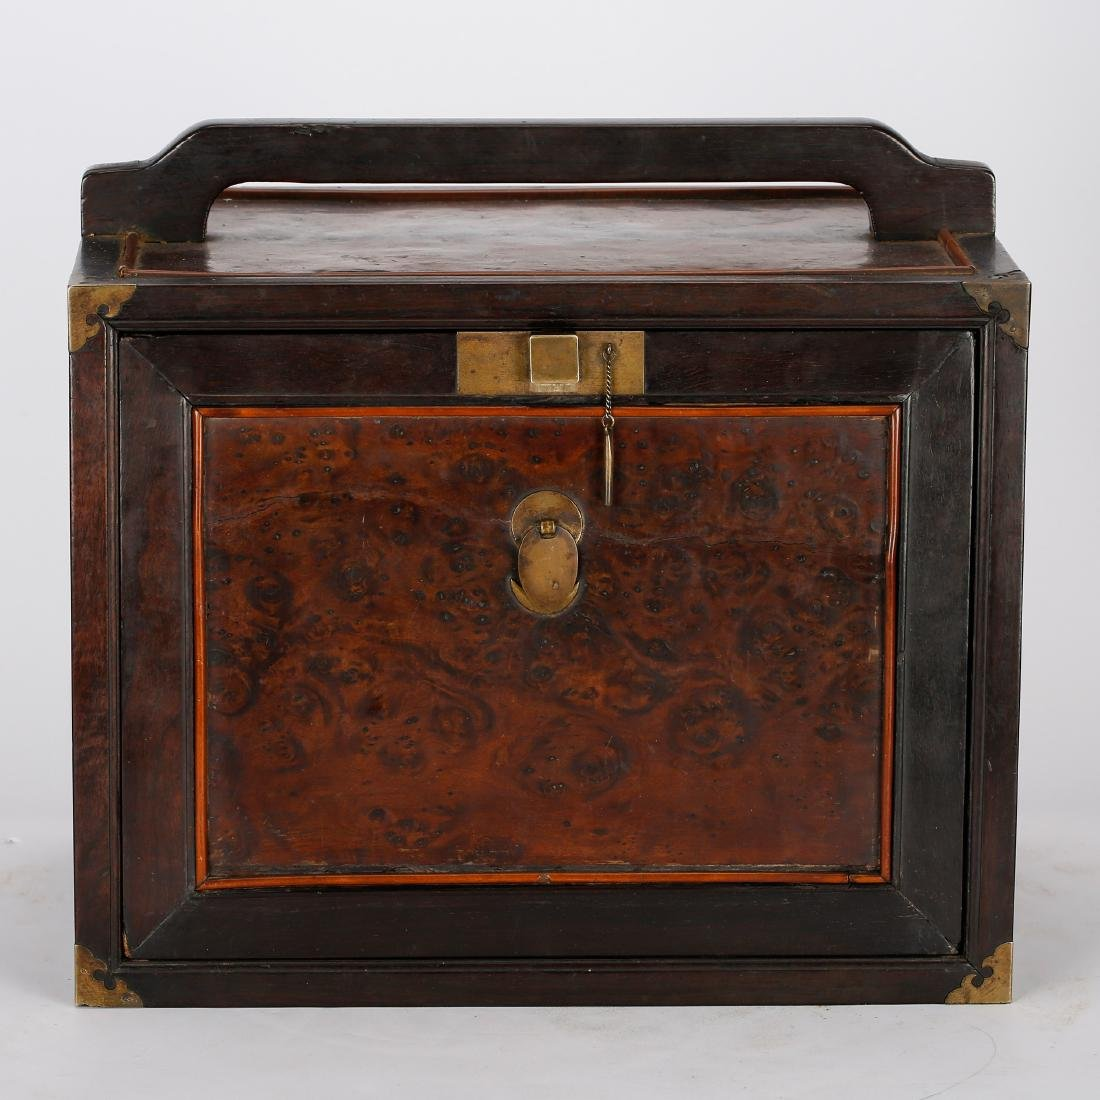 CHINESE ZITAN AND BURL WOODEN CASE, QING DYNASTY